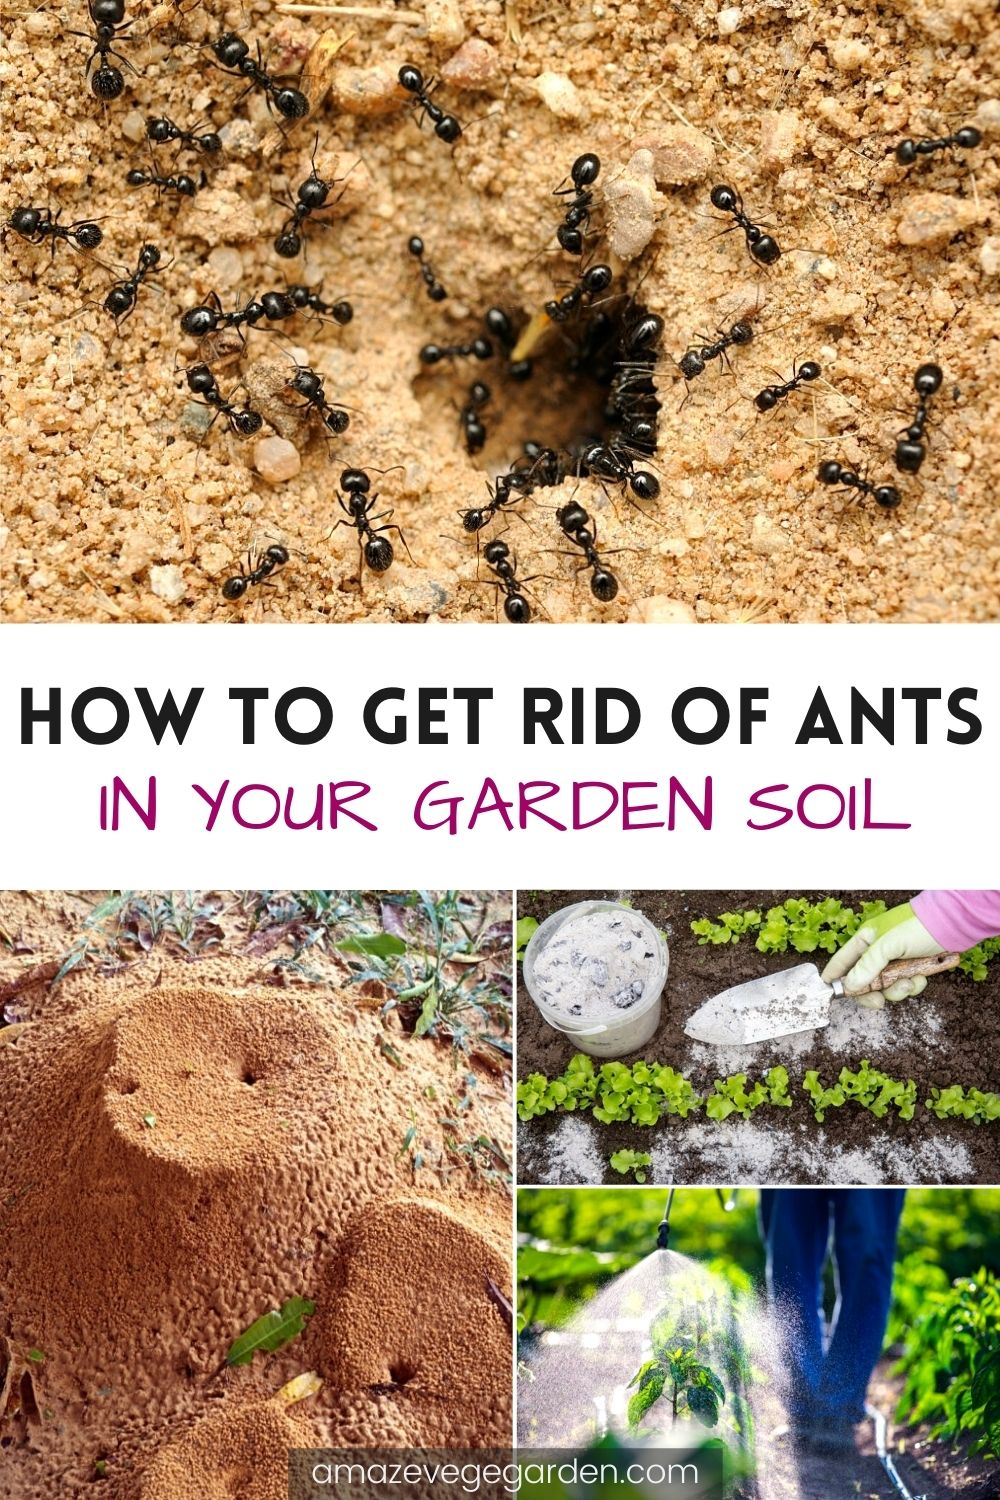 How To Get Rid of Ants In Your Garden Soil